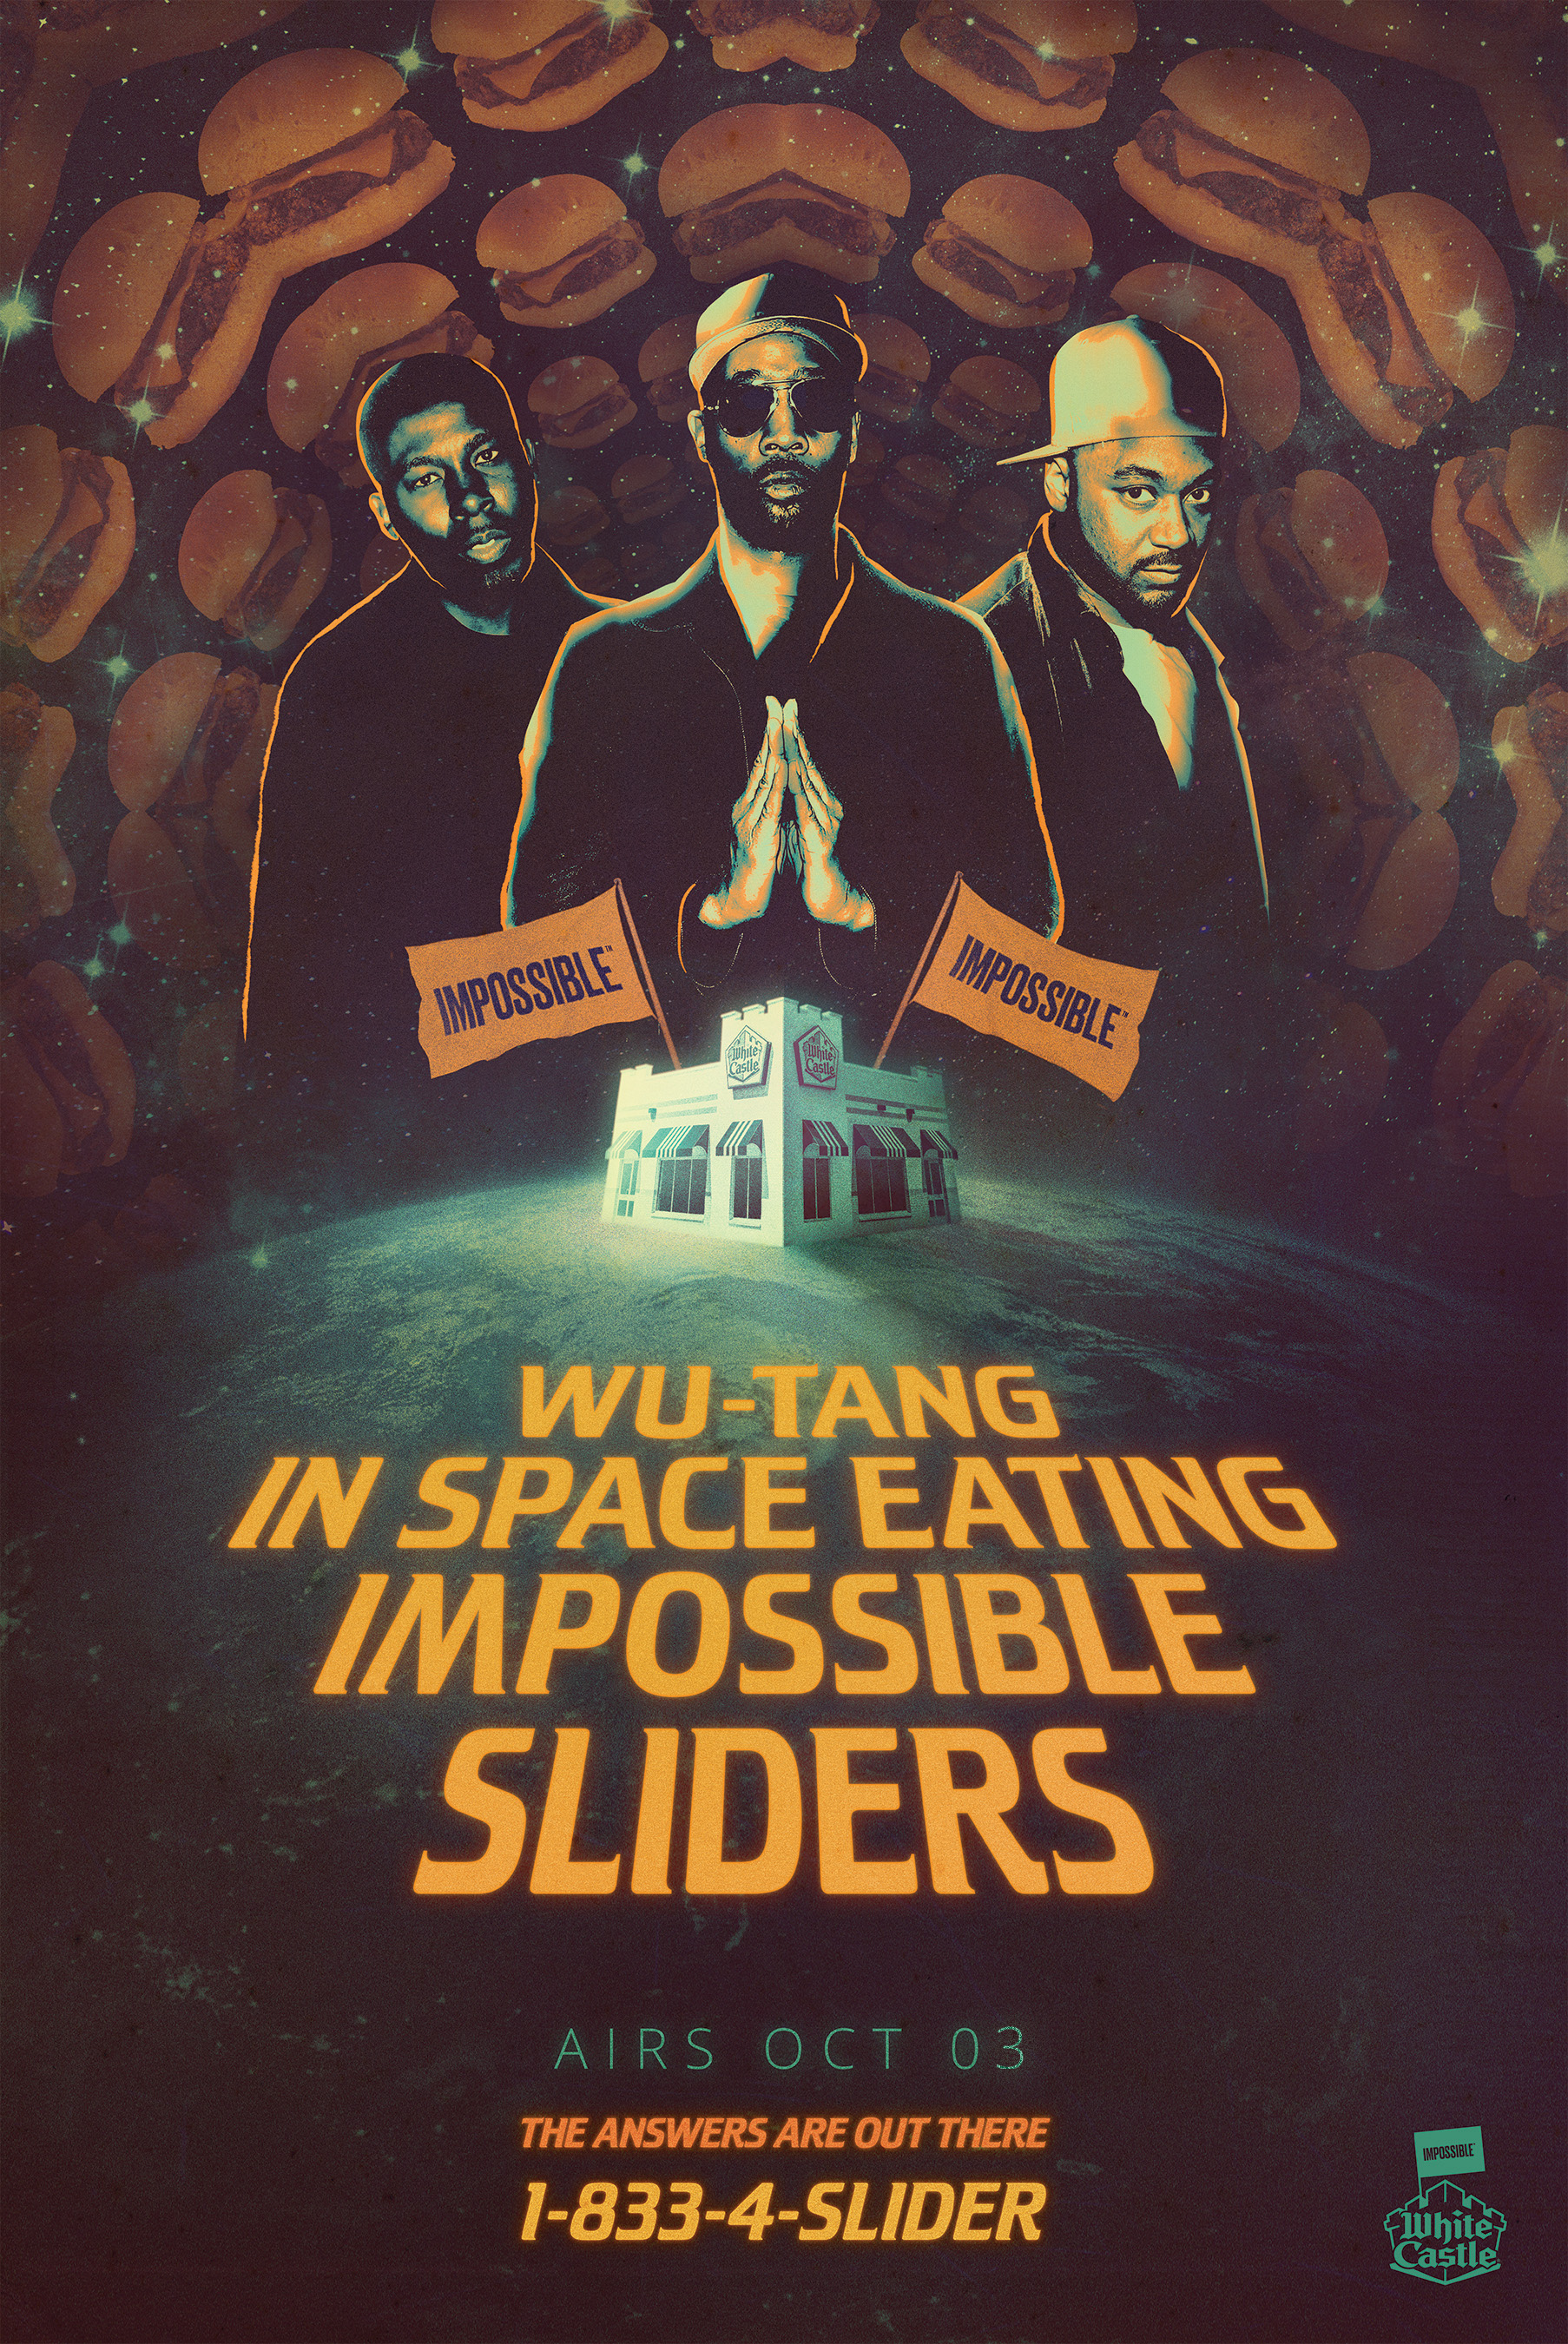 Tune in October 1st to watch Wu-Tang in Space Eating Impossible™ Sliders. The Wu is answering Earthlings' questions about life, love, existence, anything! If you have a question, call 1-833-4-SLIDER!